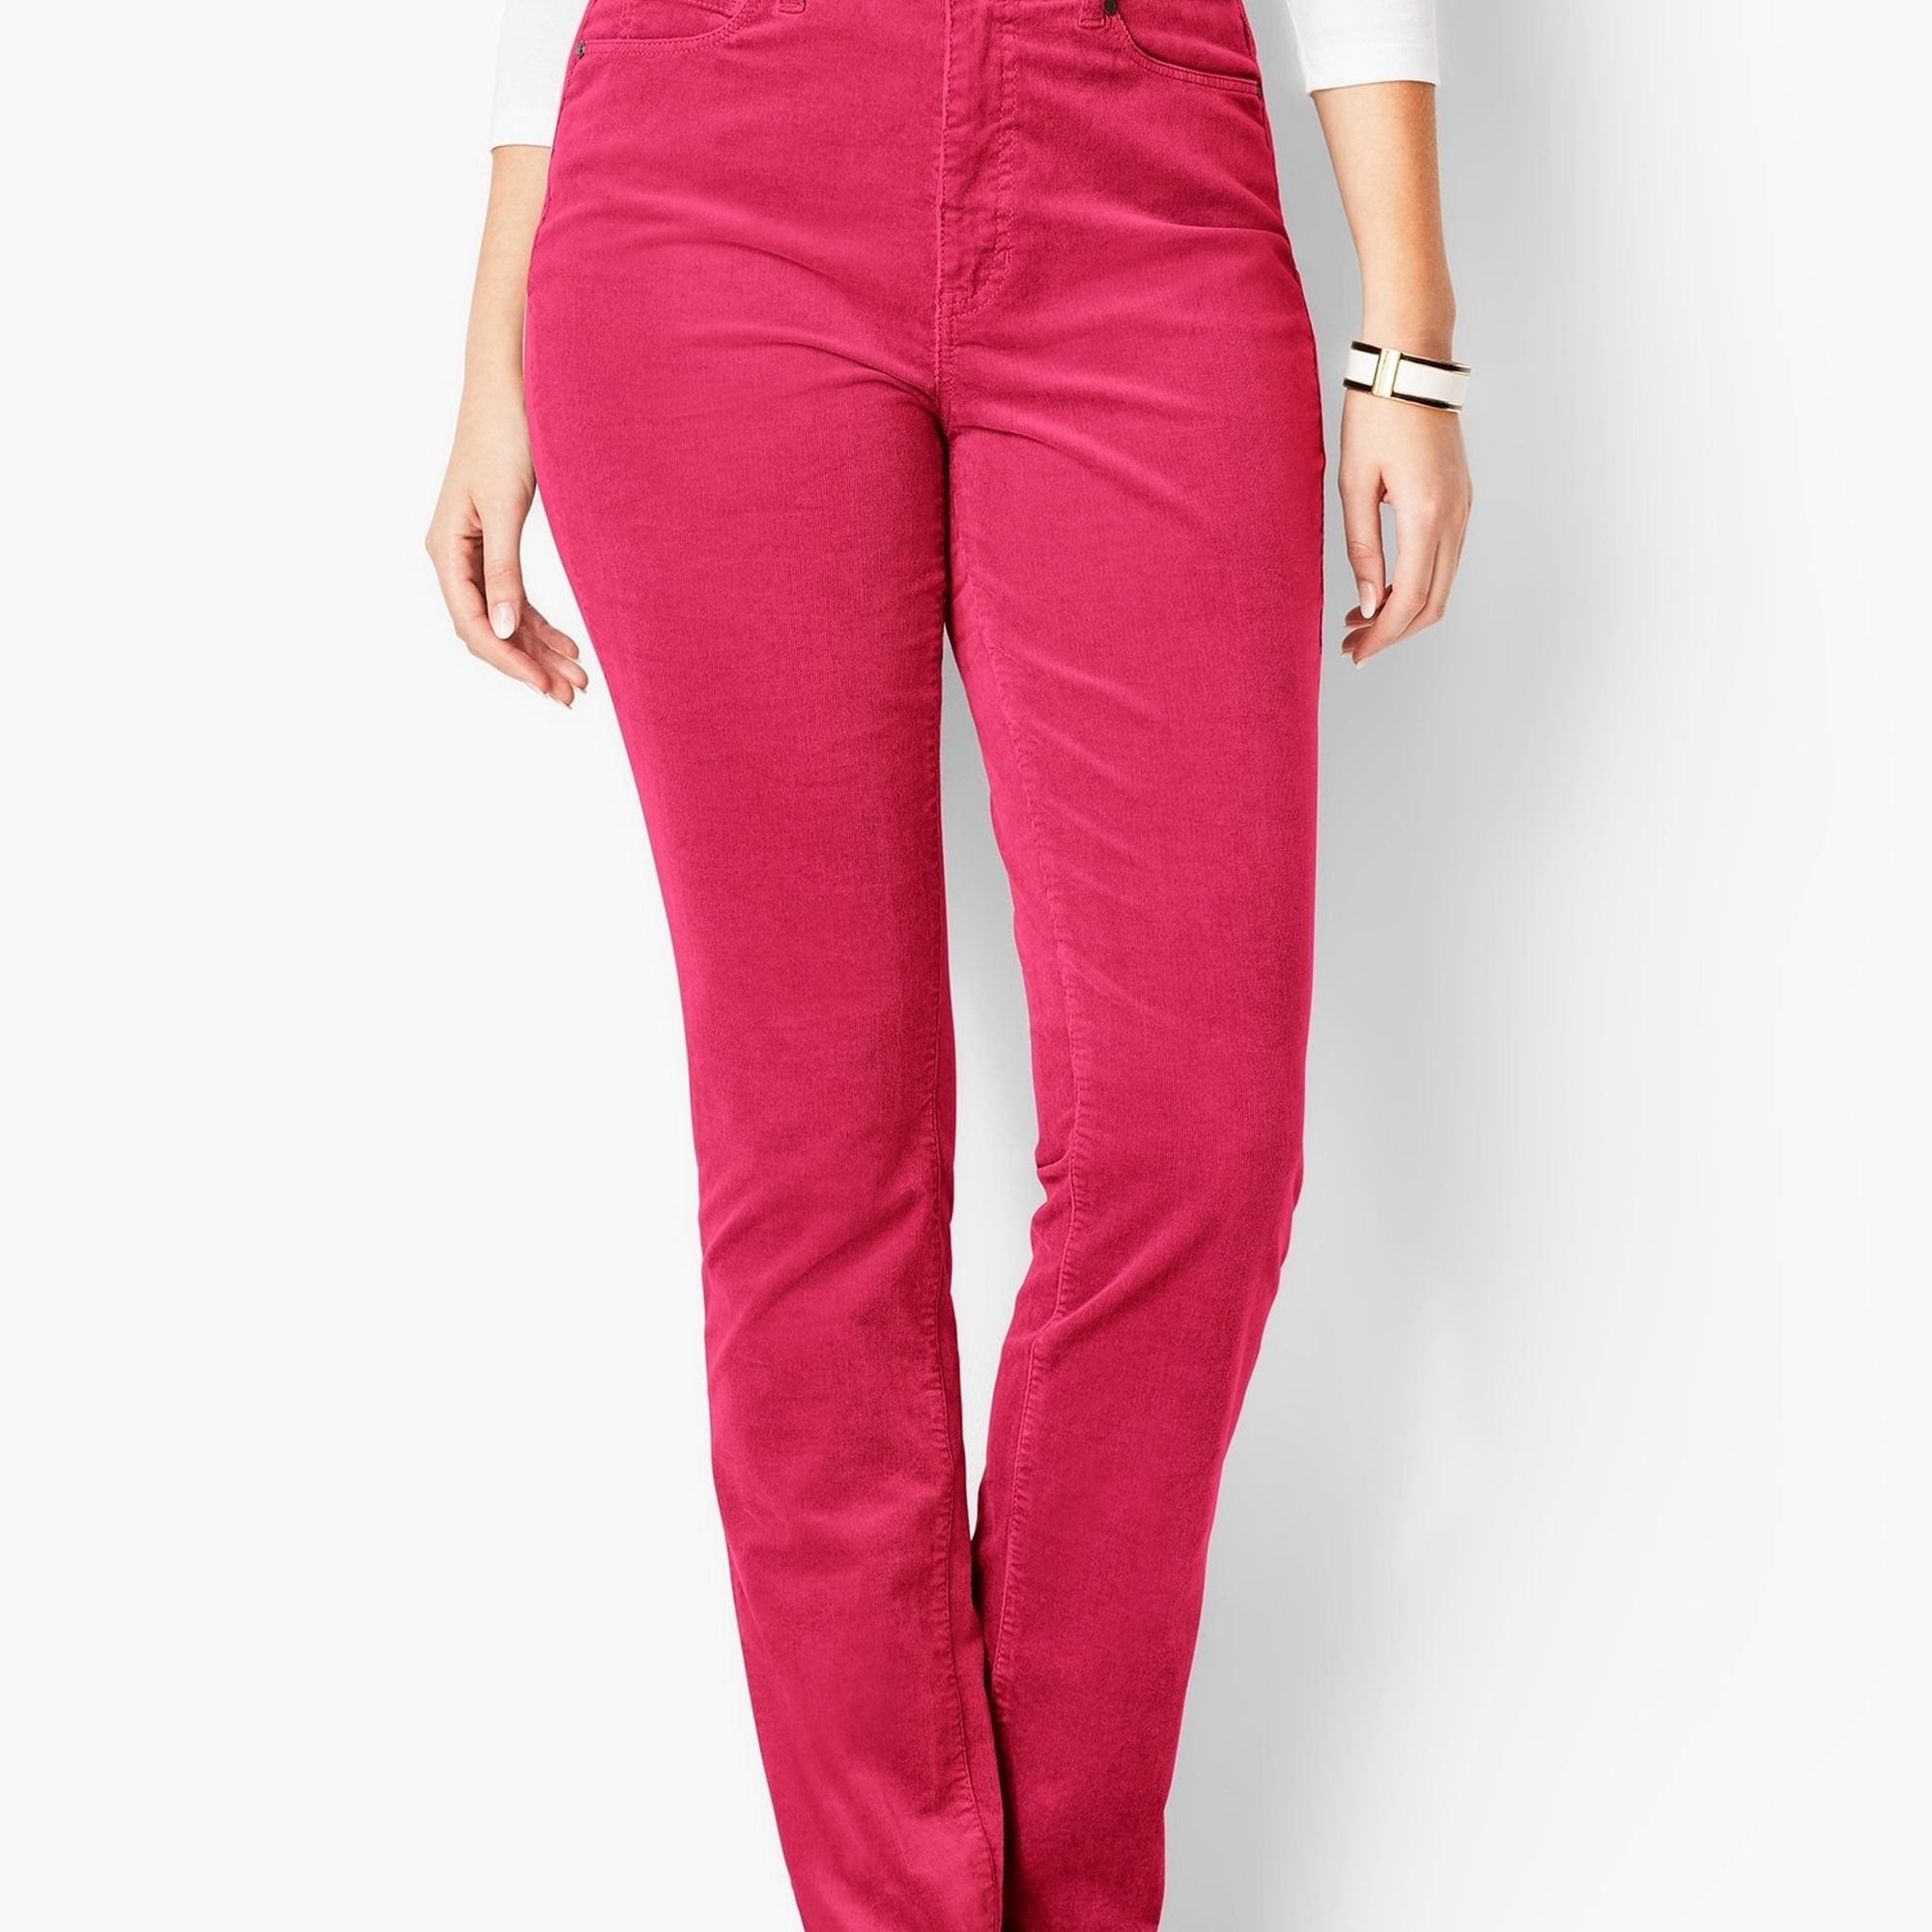 Talbots pink corduroy pants on A Well Styled Life